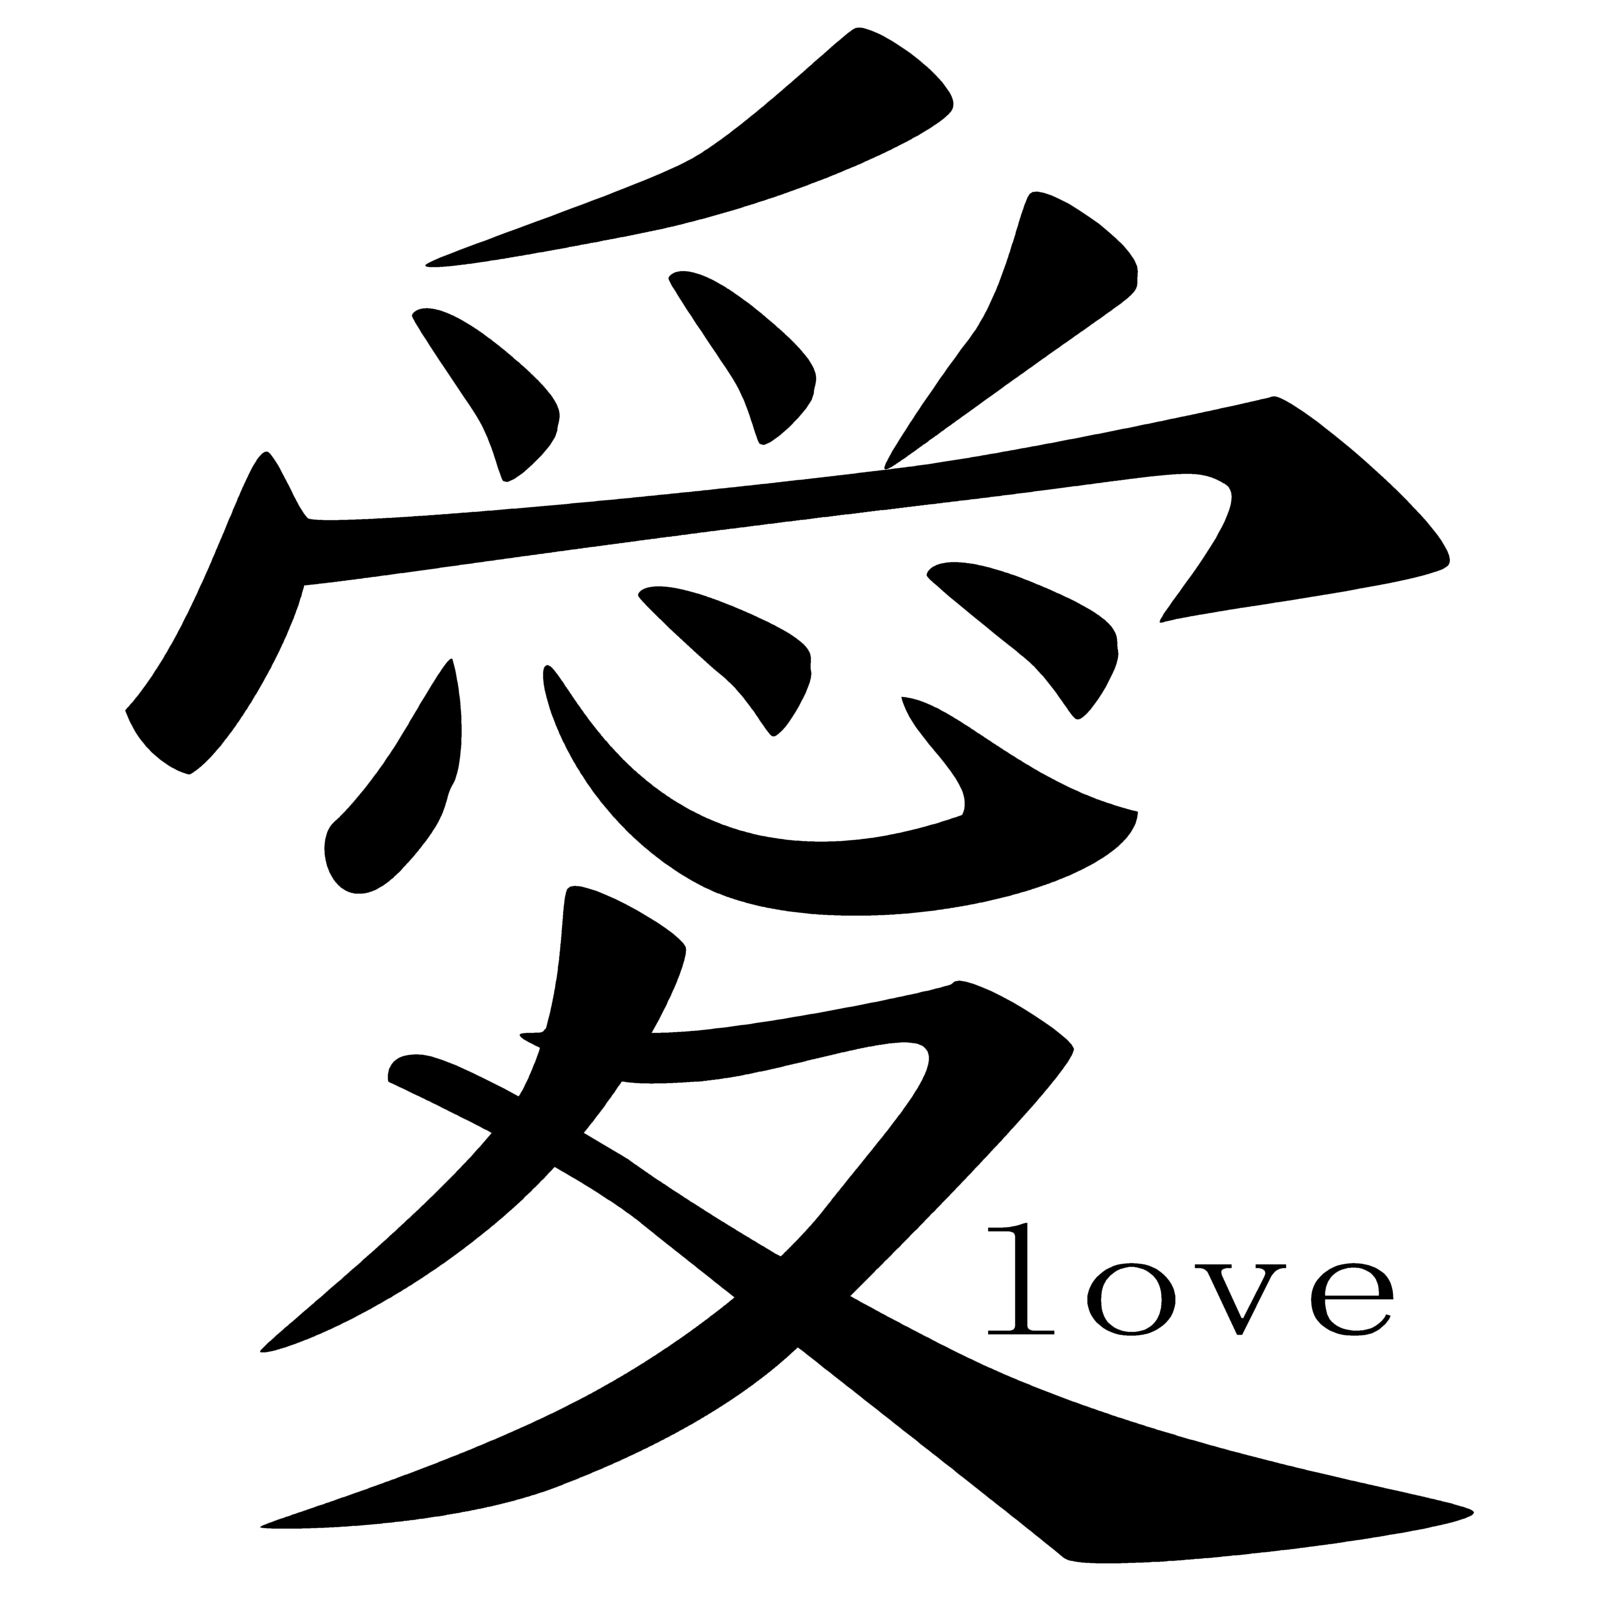 Chinese character love index of miscpixsv dayvalentinesday chinese character love index of miscpixsv dayvalentinesdaychinese biocorpaavc